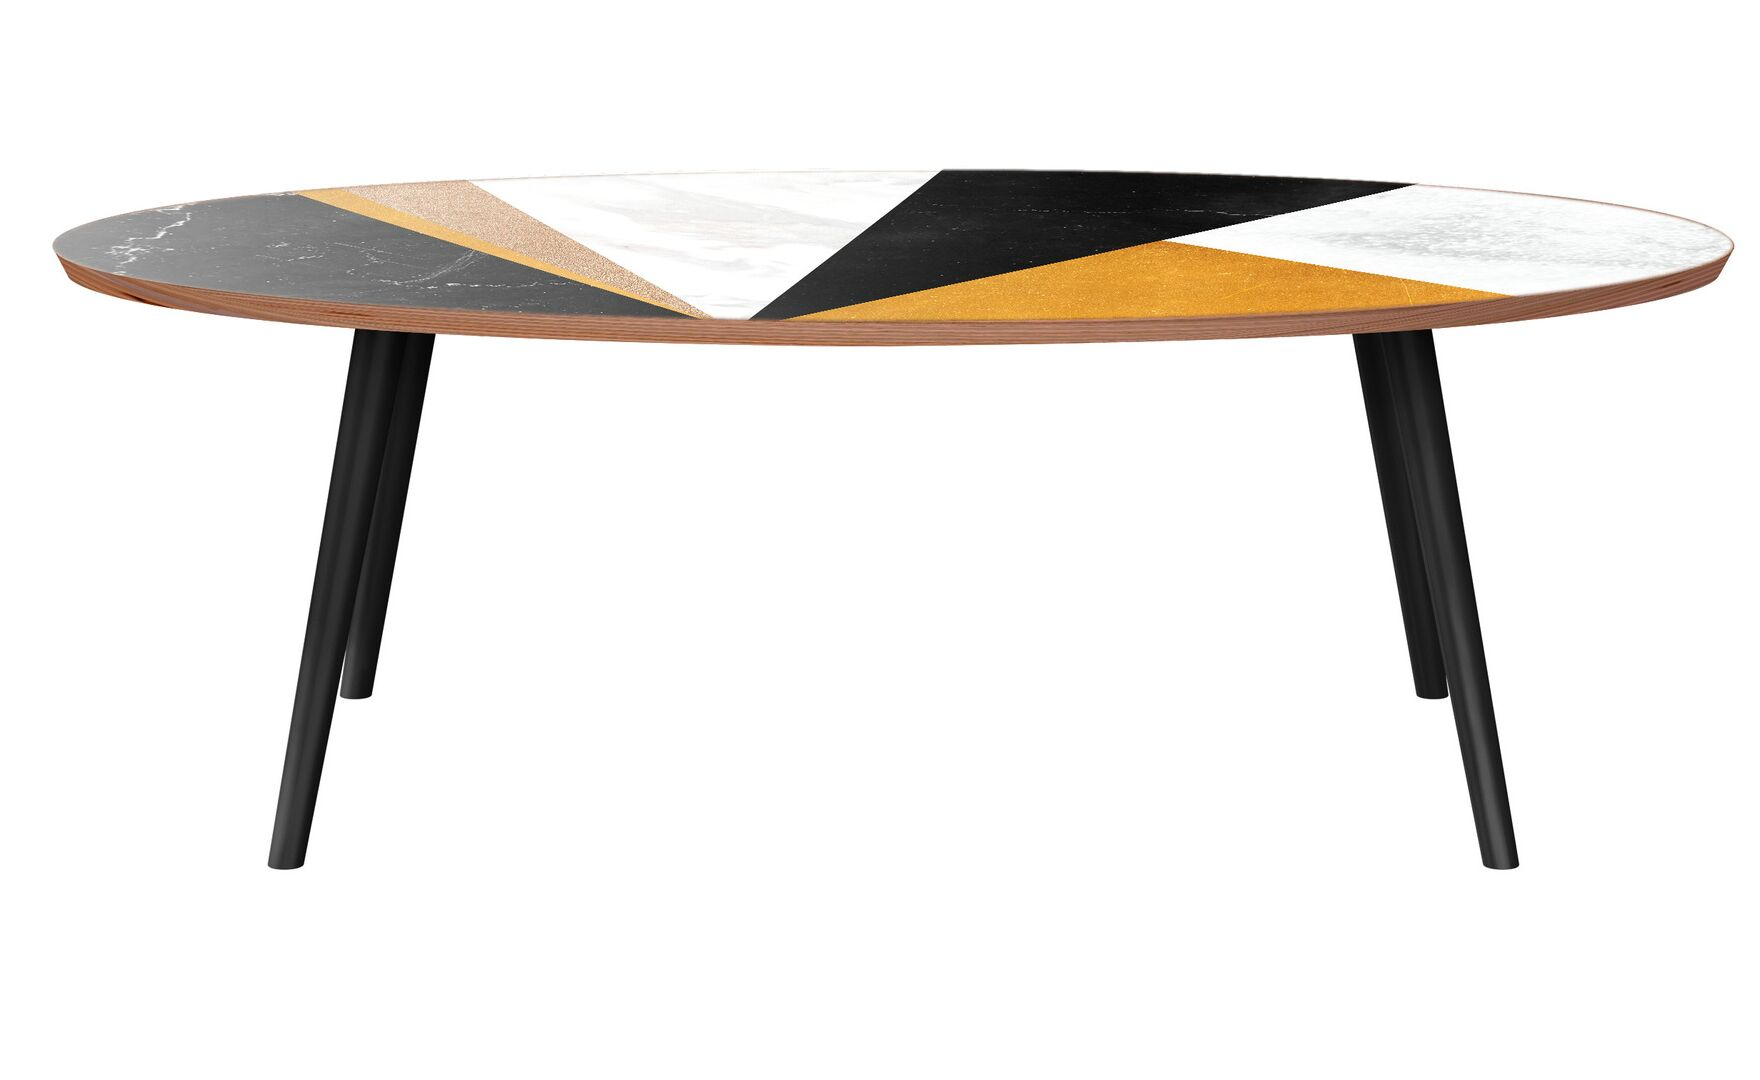 Guthridge Coffee Table Table Top Color: Walnut/Black, Table Base Color: Black